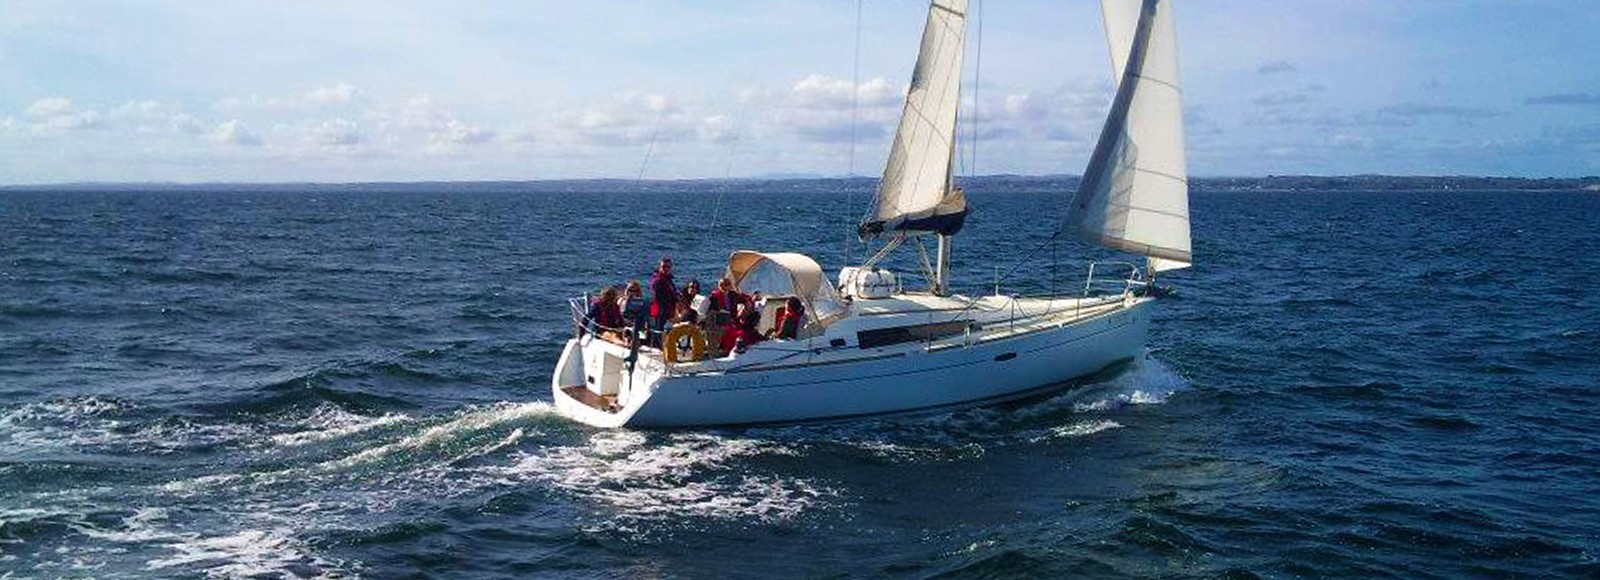 The charter yacht Súil Eile under sail in Galway Bay